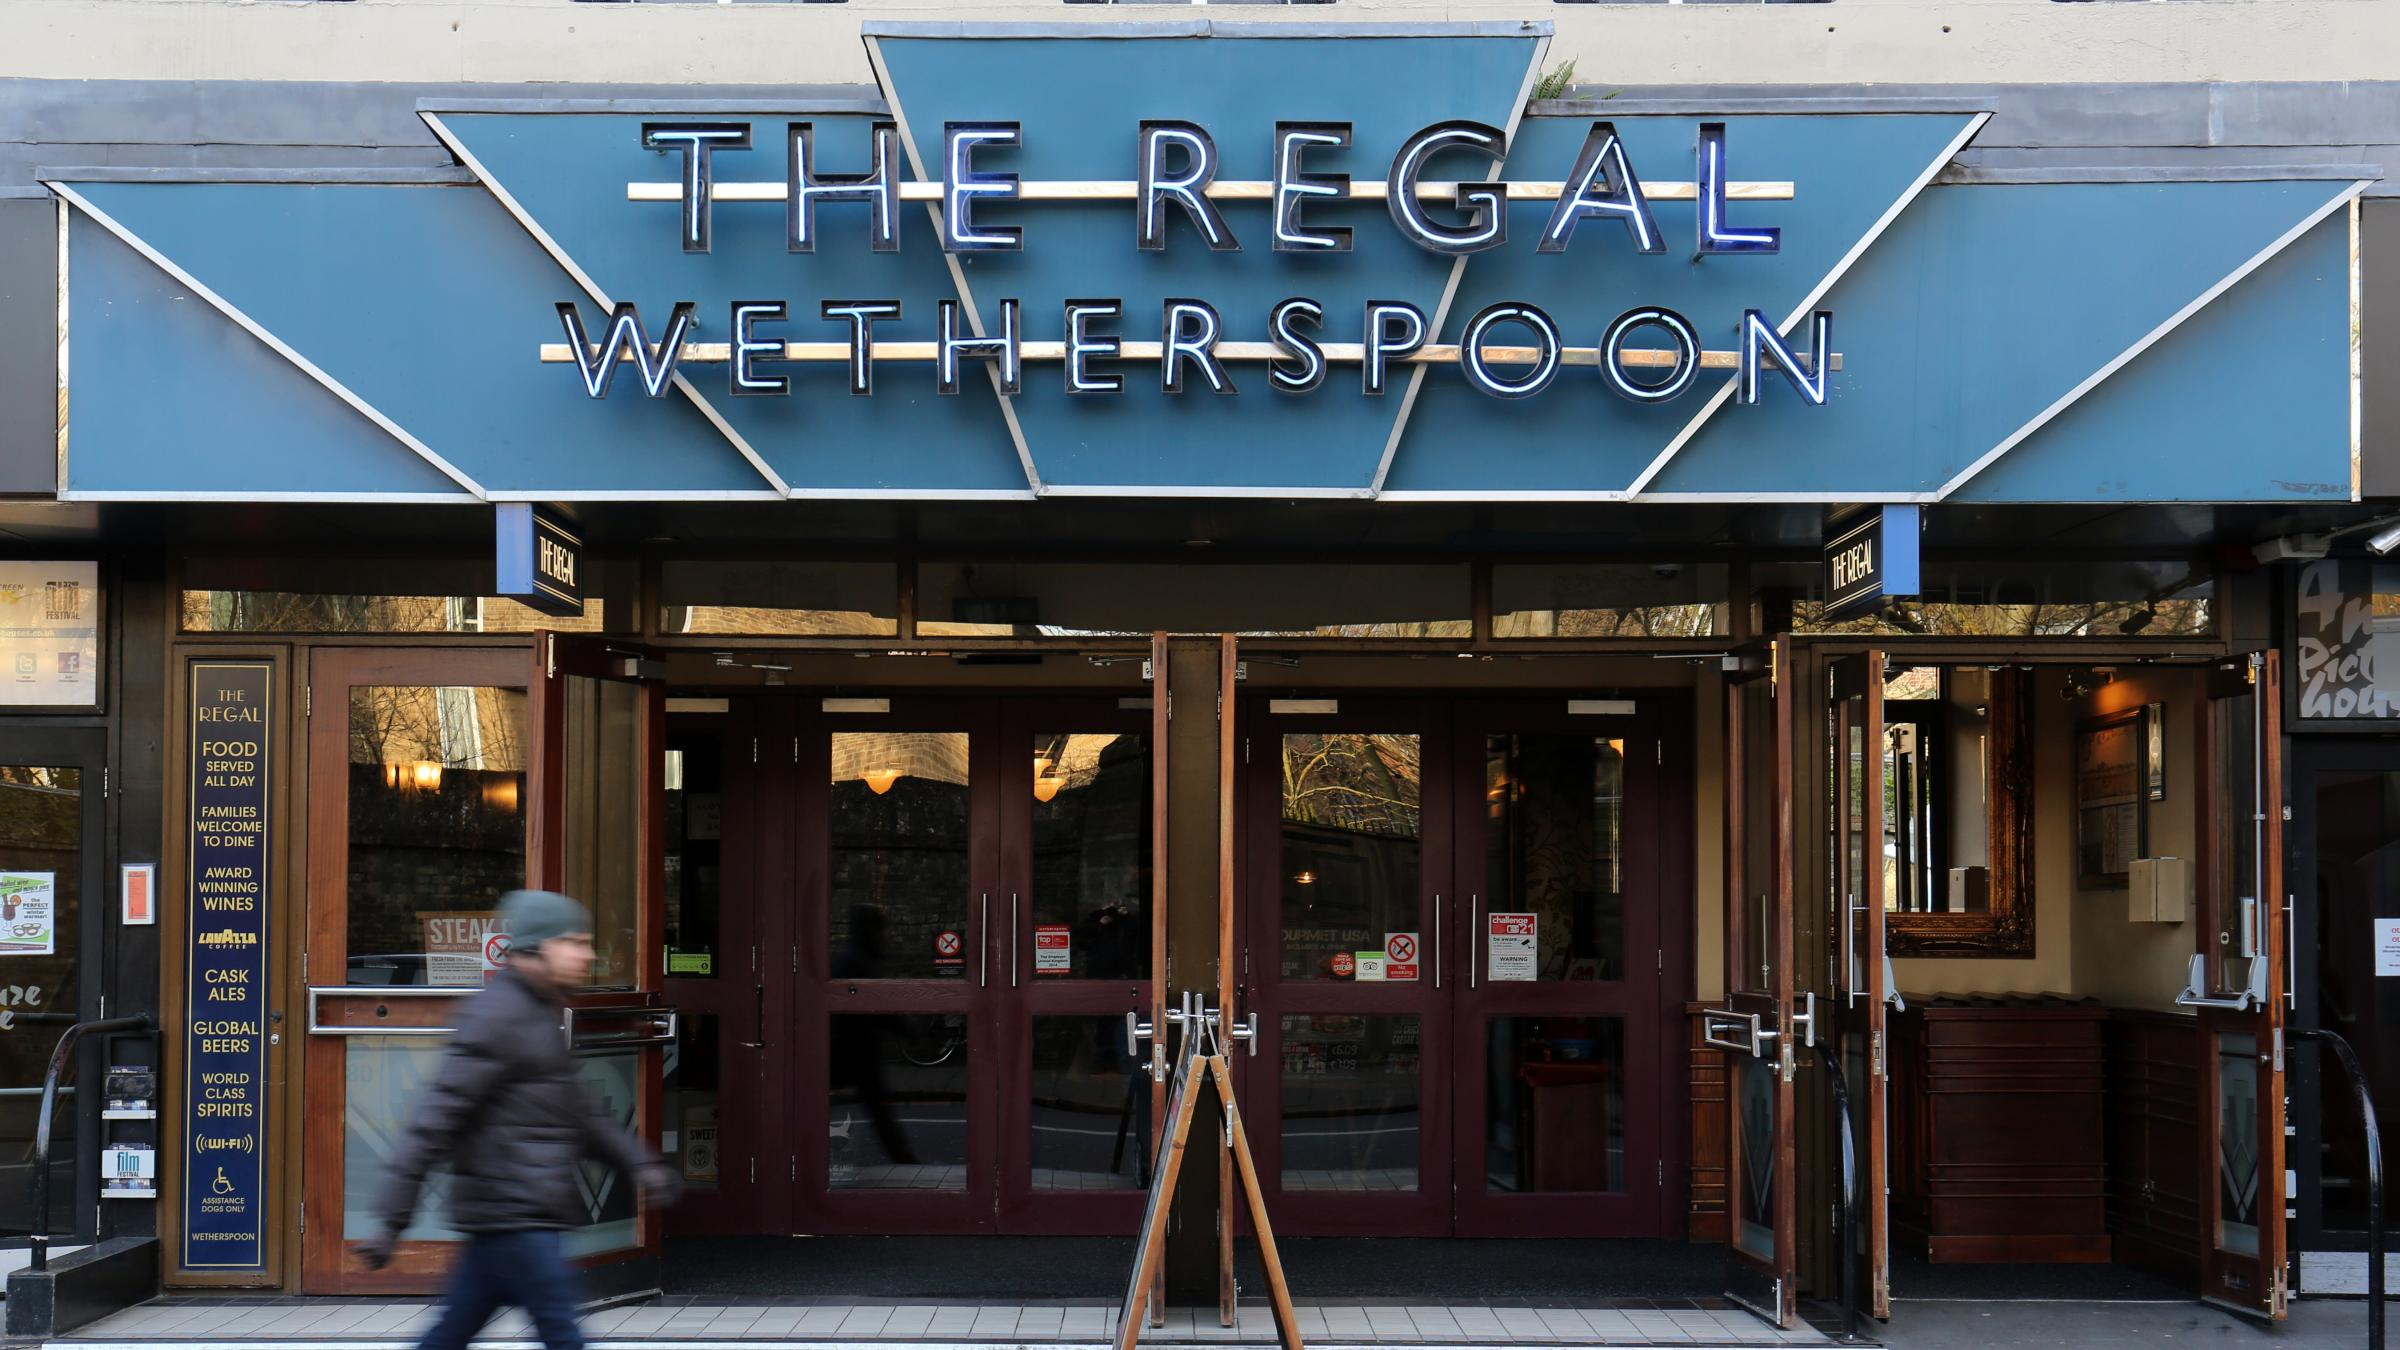 Wetherspoon shuts down social media accounts amid trolling and data misuse fears